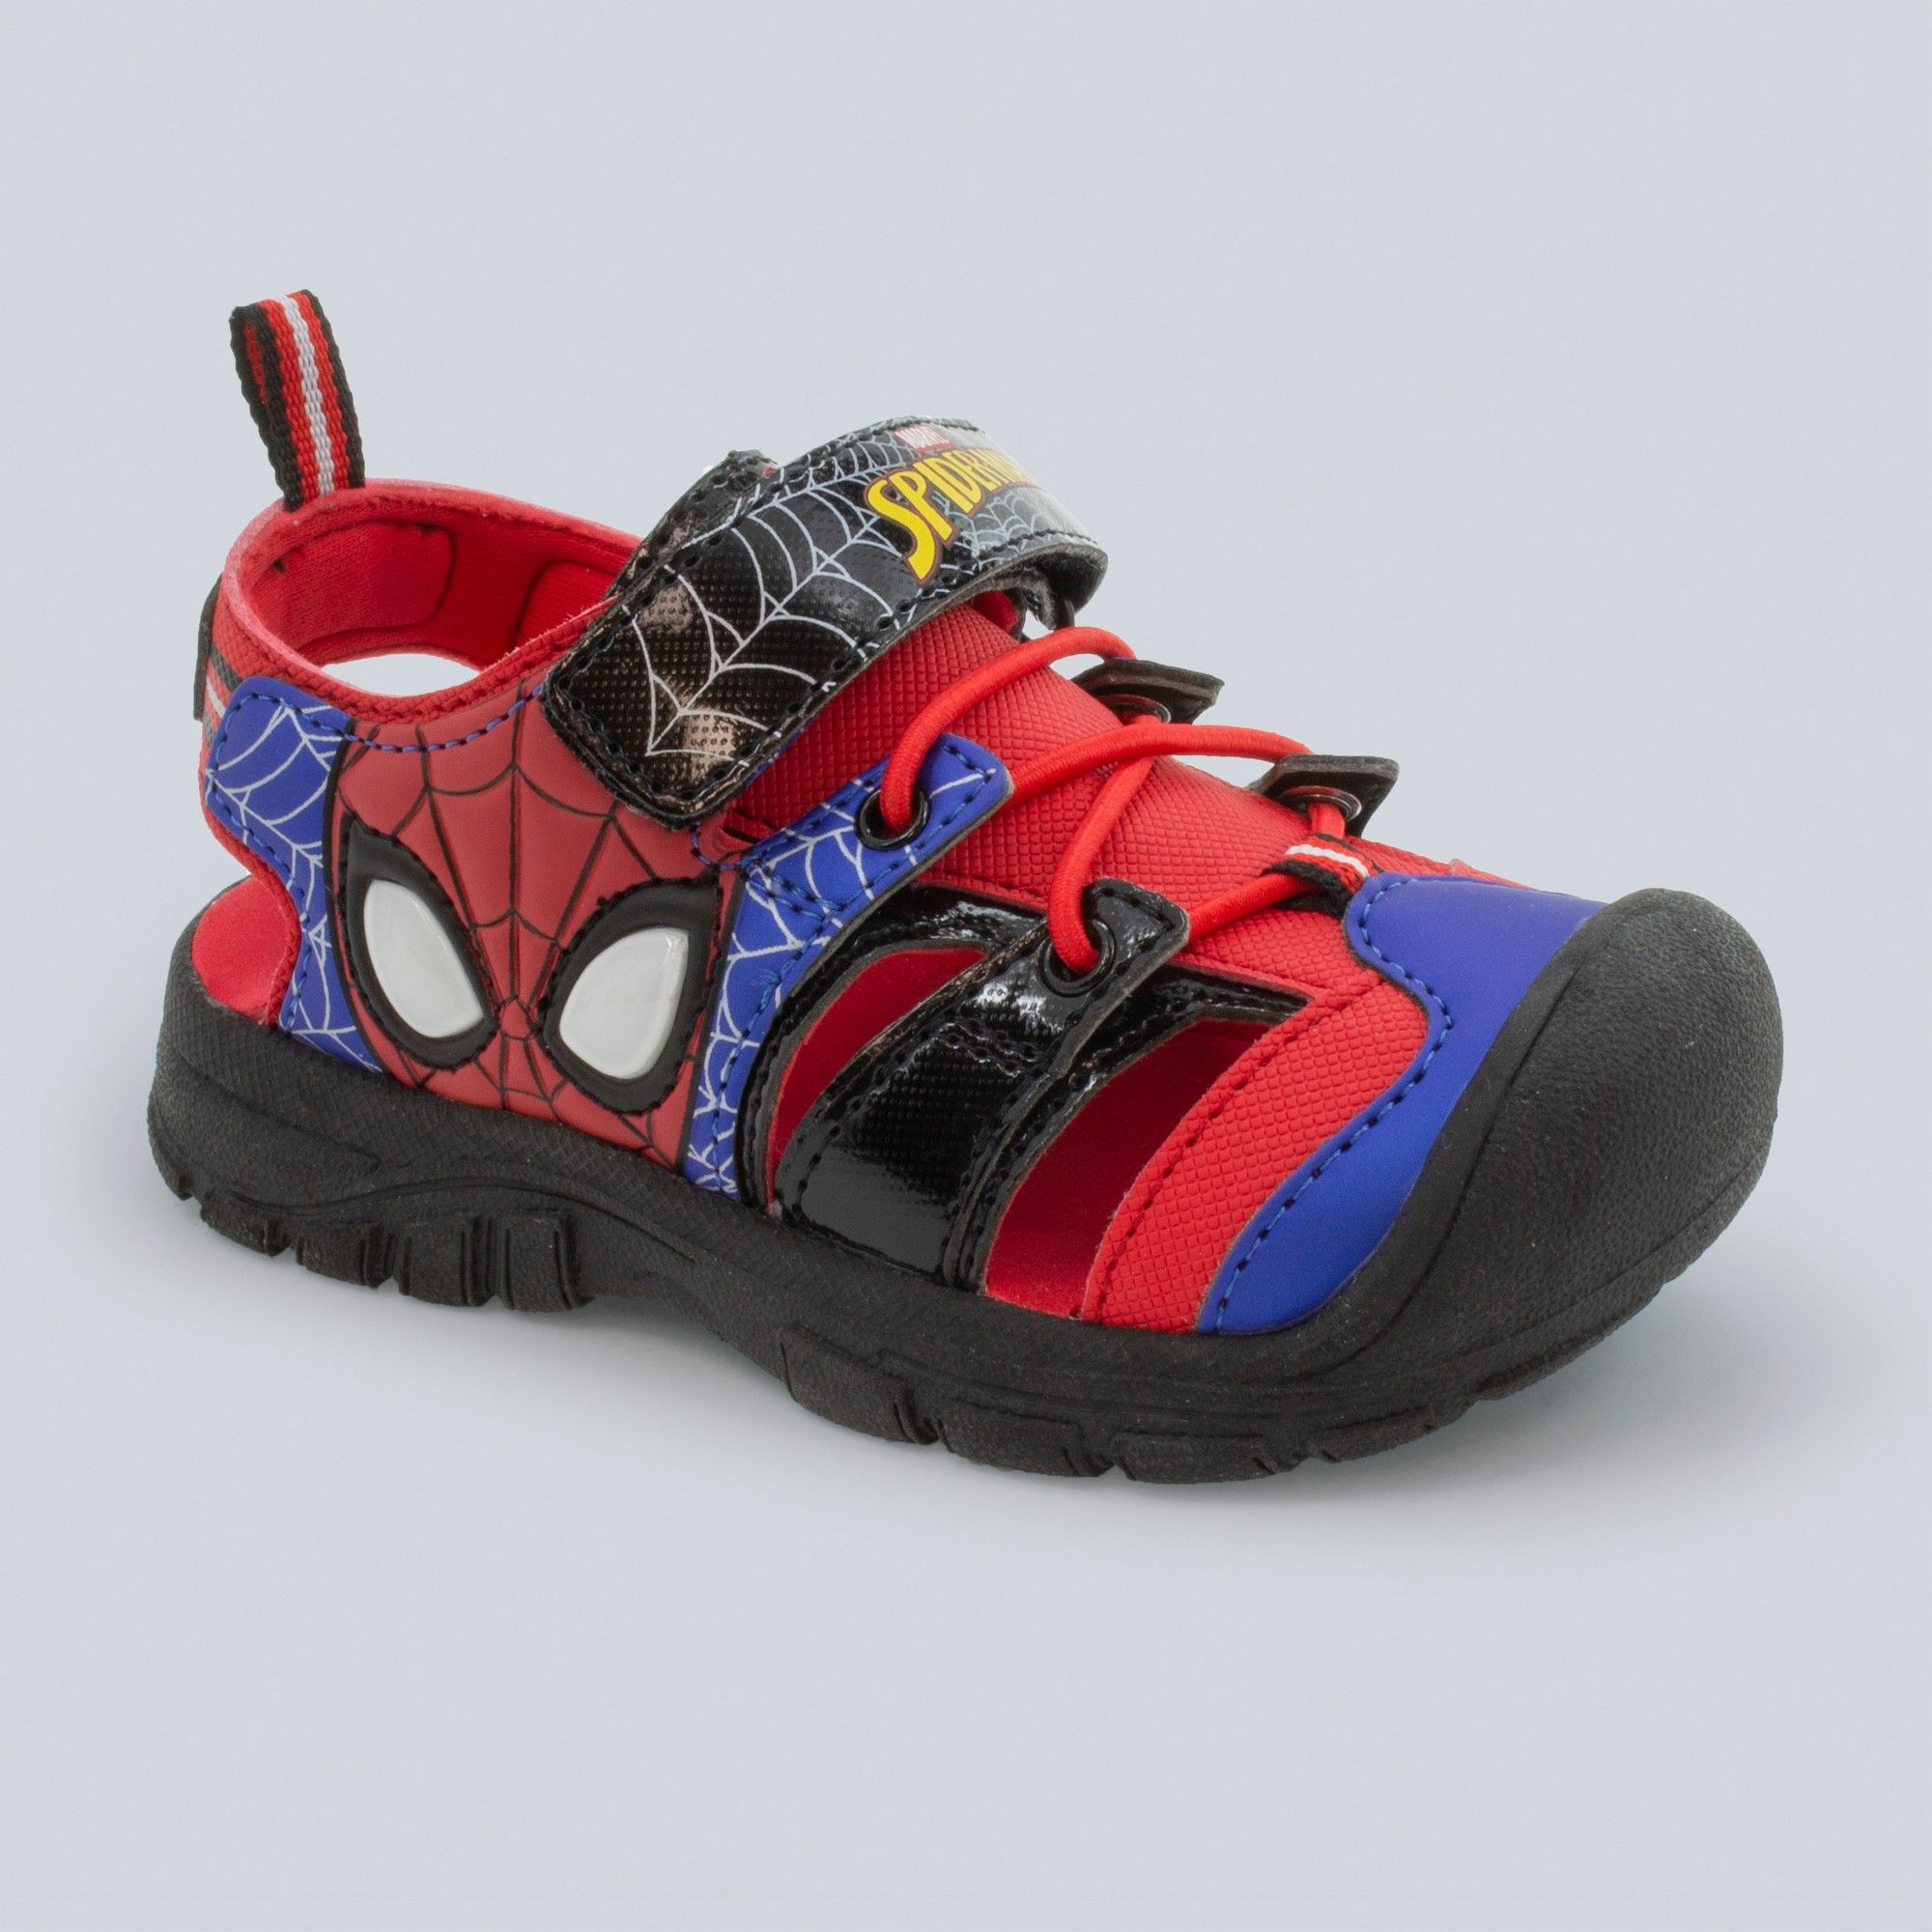 c55eb1351e5 Toddler Boys' Marvel Spider-Man Light-Up Hiking Sandals - Red 11 in ...